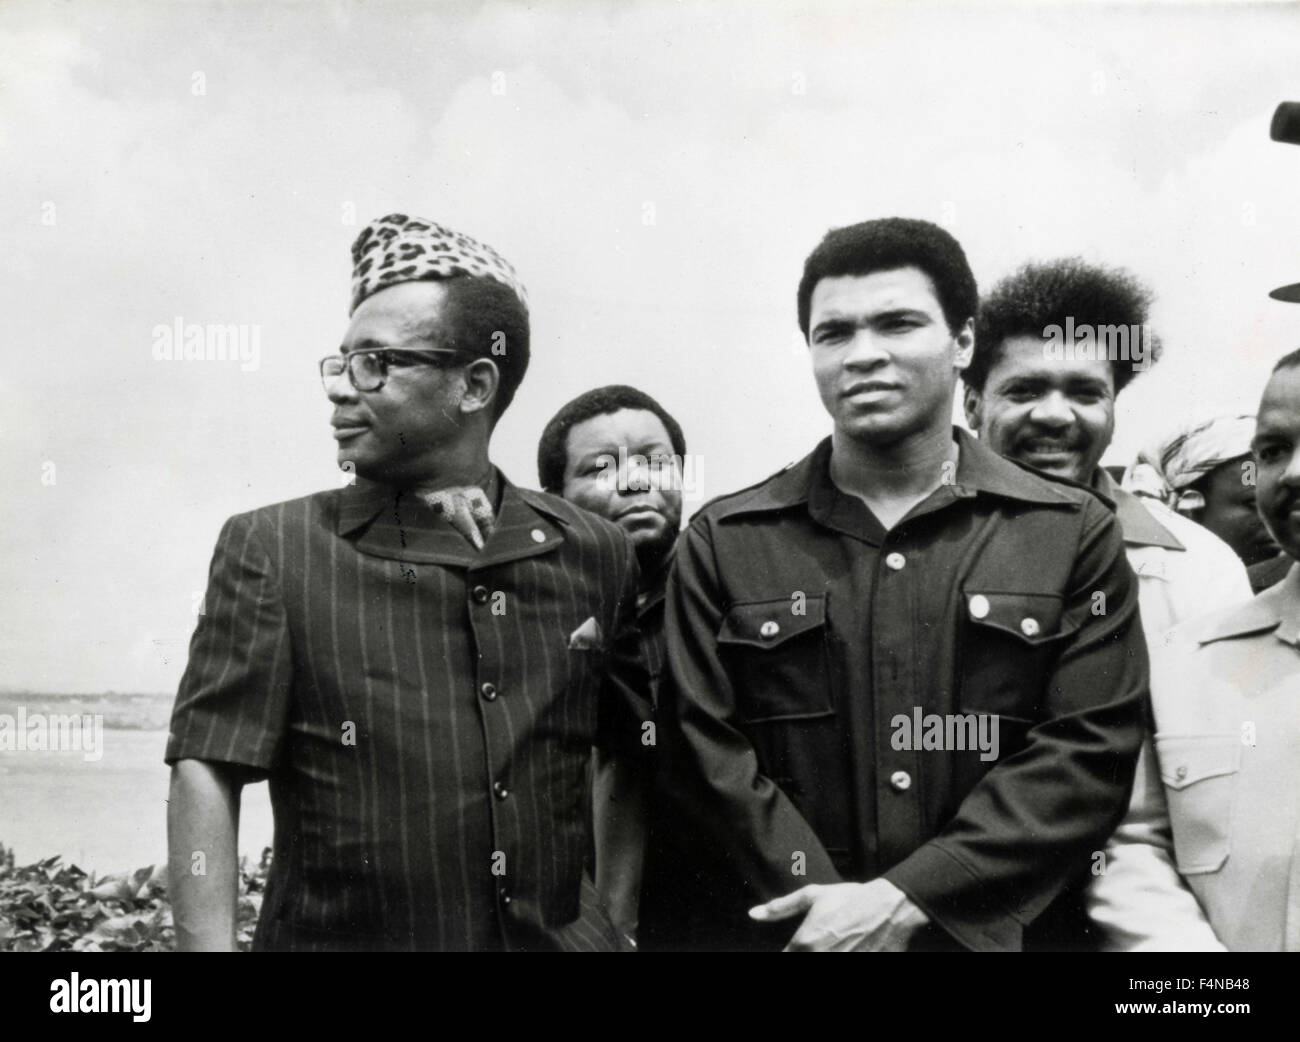 Mobutu and Muhammad Ali, Zaire - President, Democratic Republic of Congo - Stock Image